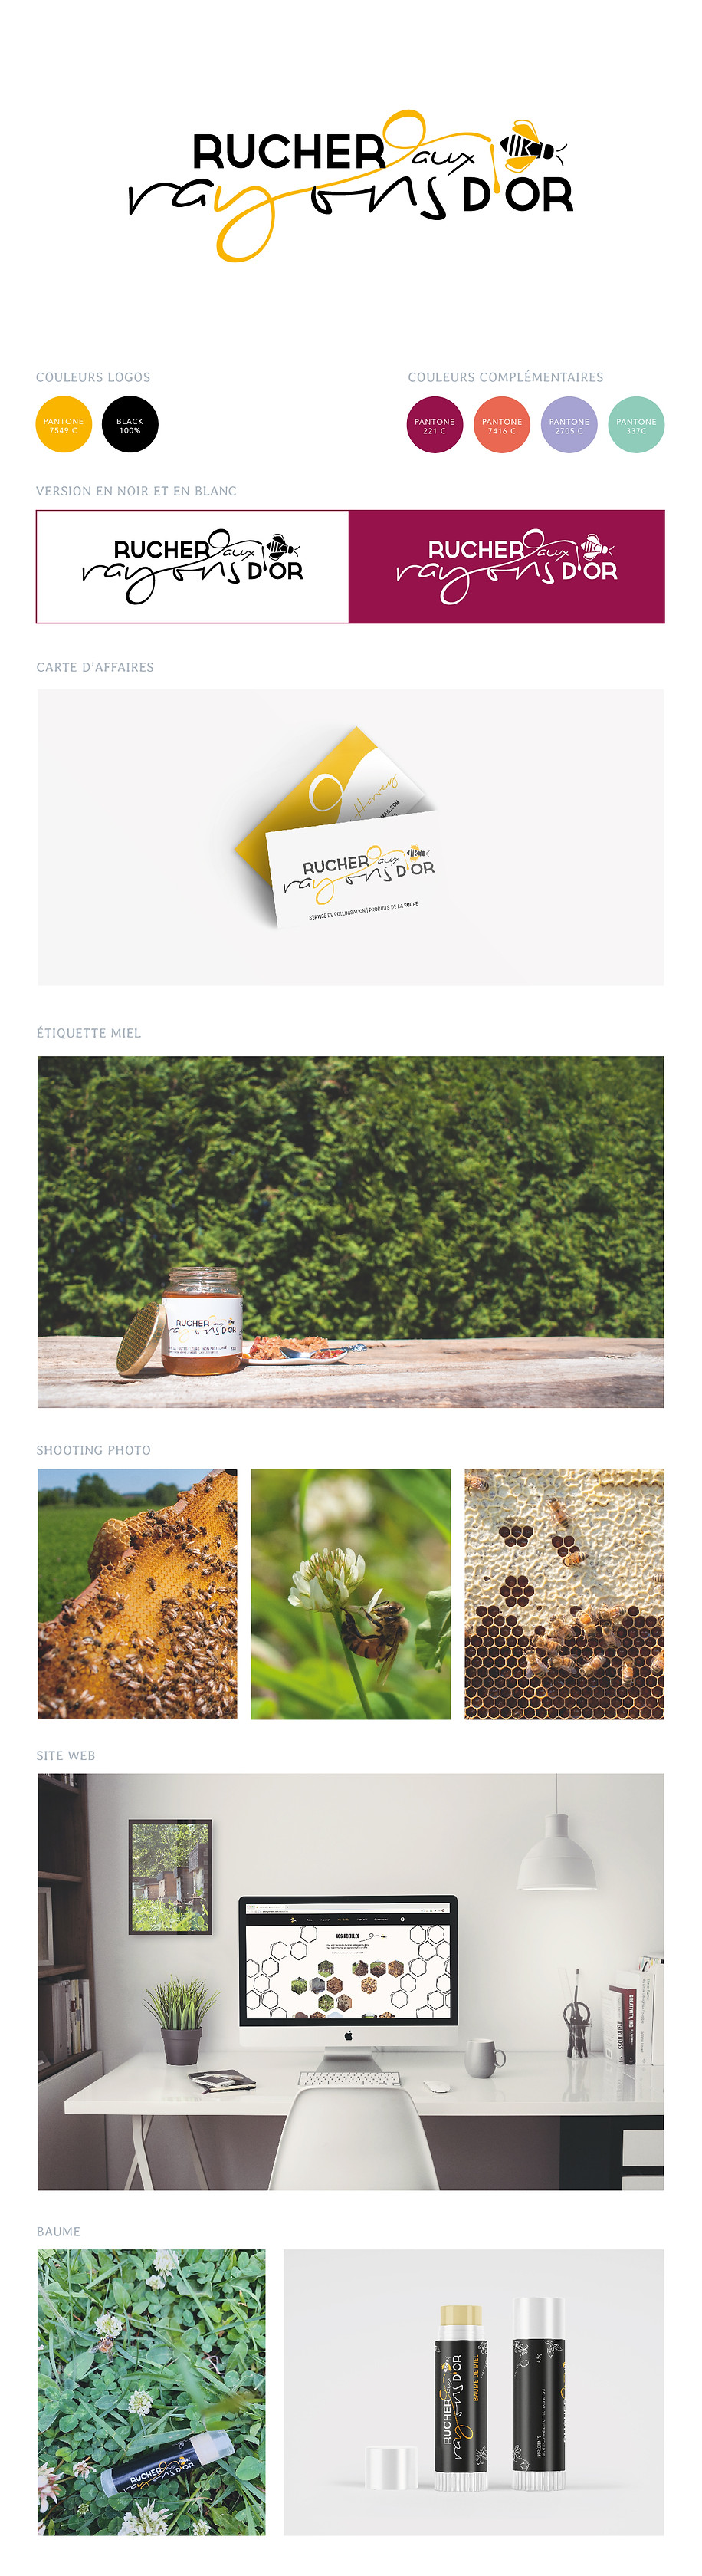 Pomme F | Rucher aux rayons d'or | miel | abeille | baume | ruches